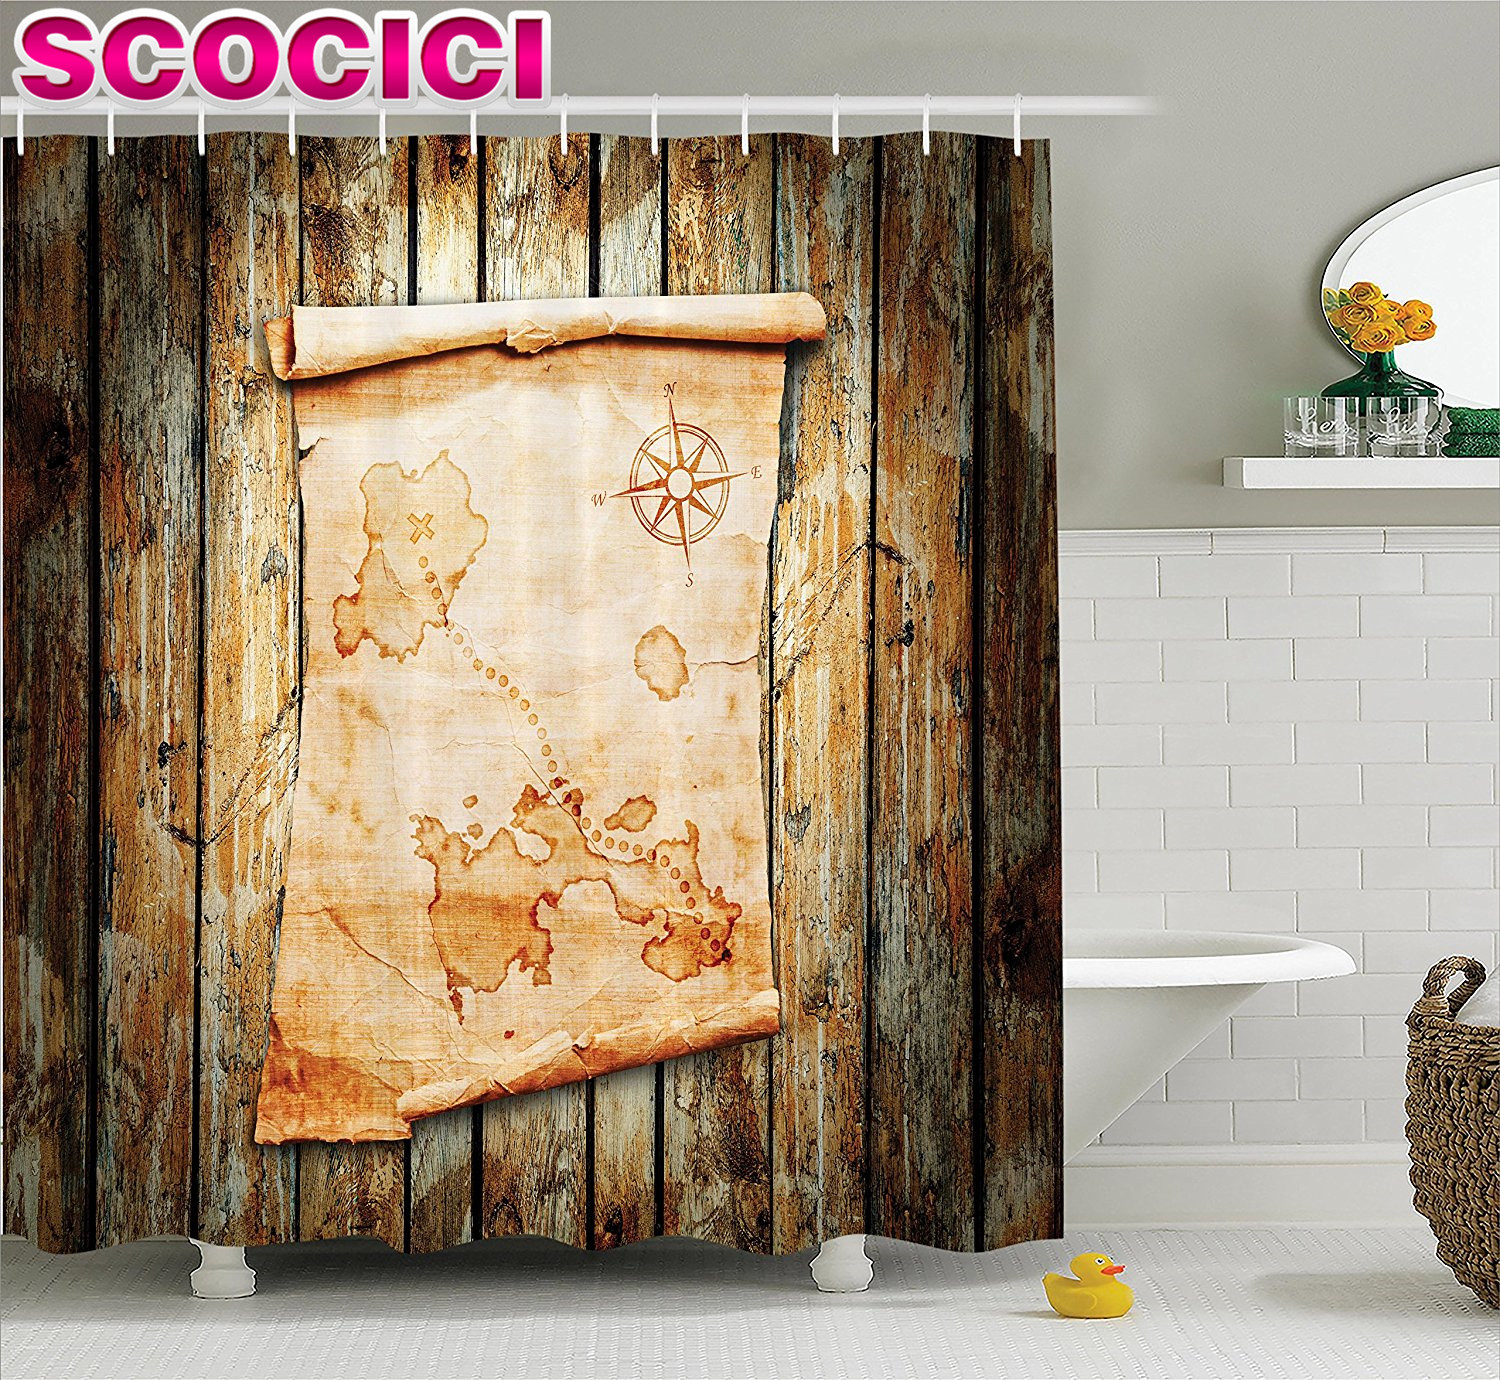 Treasure map shower curtain - Island Map Decor Shower Curtain Set Treasure Map On Rustic Timber X Marks The Spot Of Gold Nautical Pirates Concept Bathroom Acc